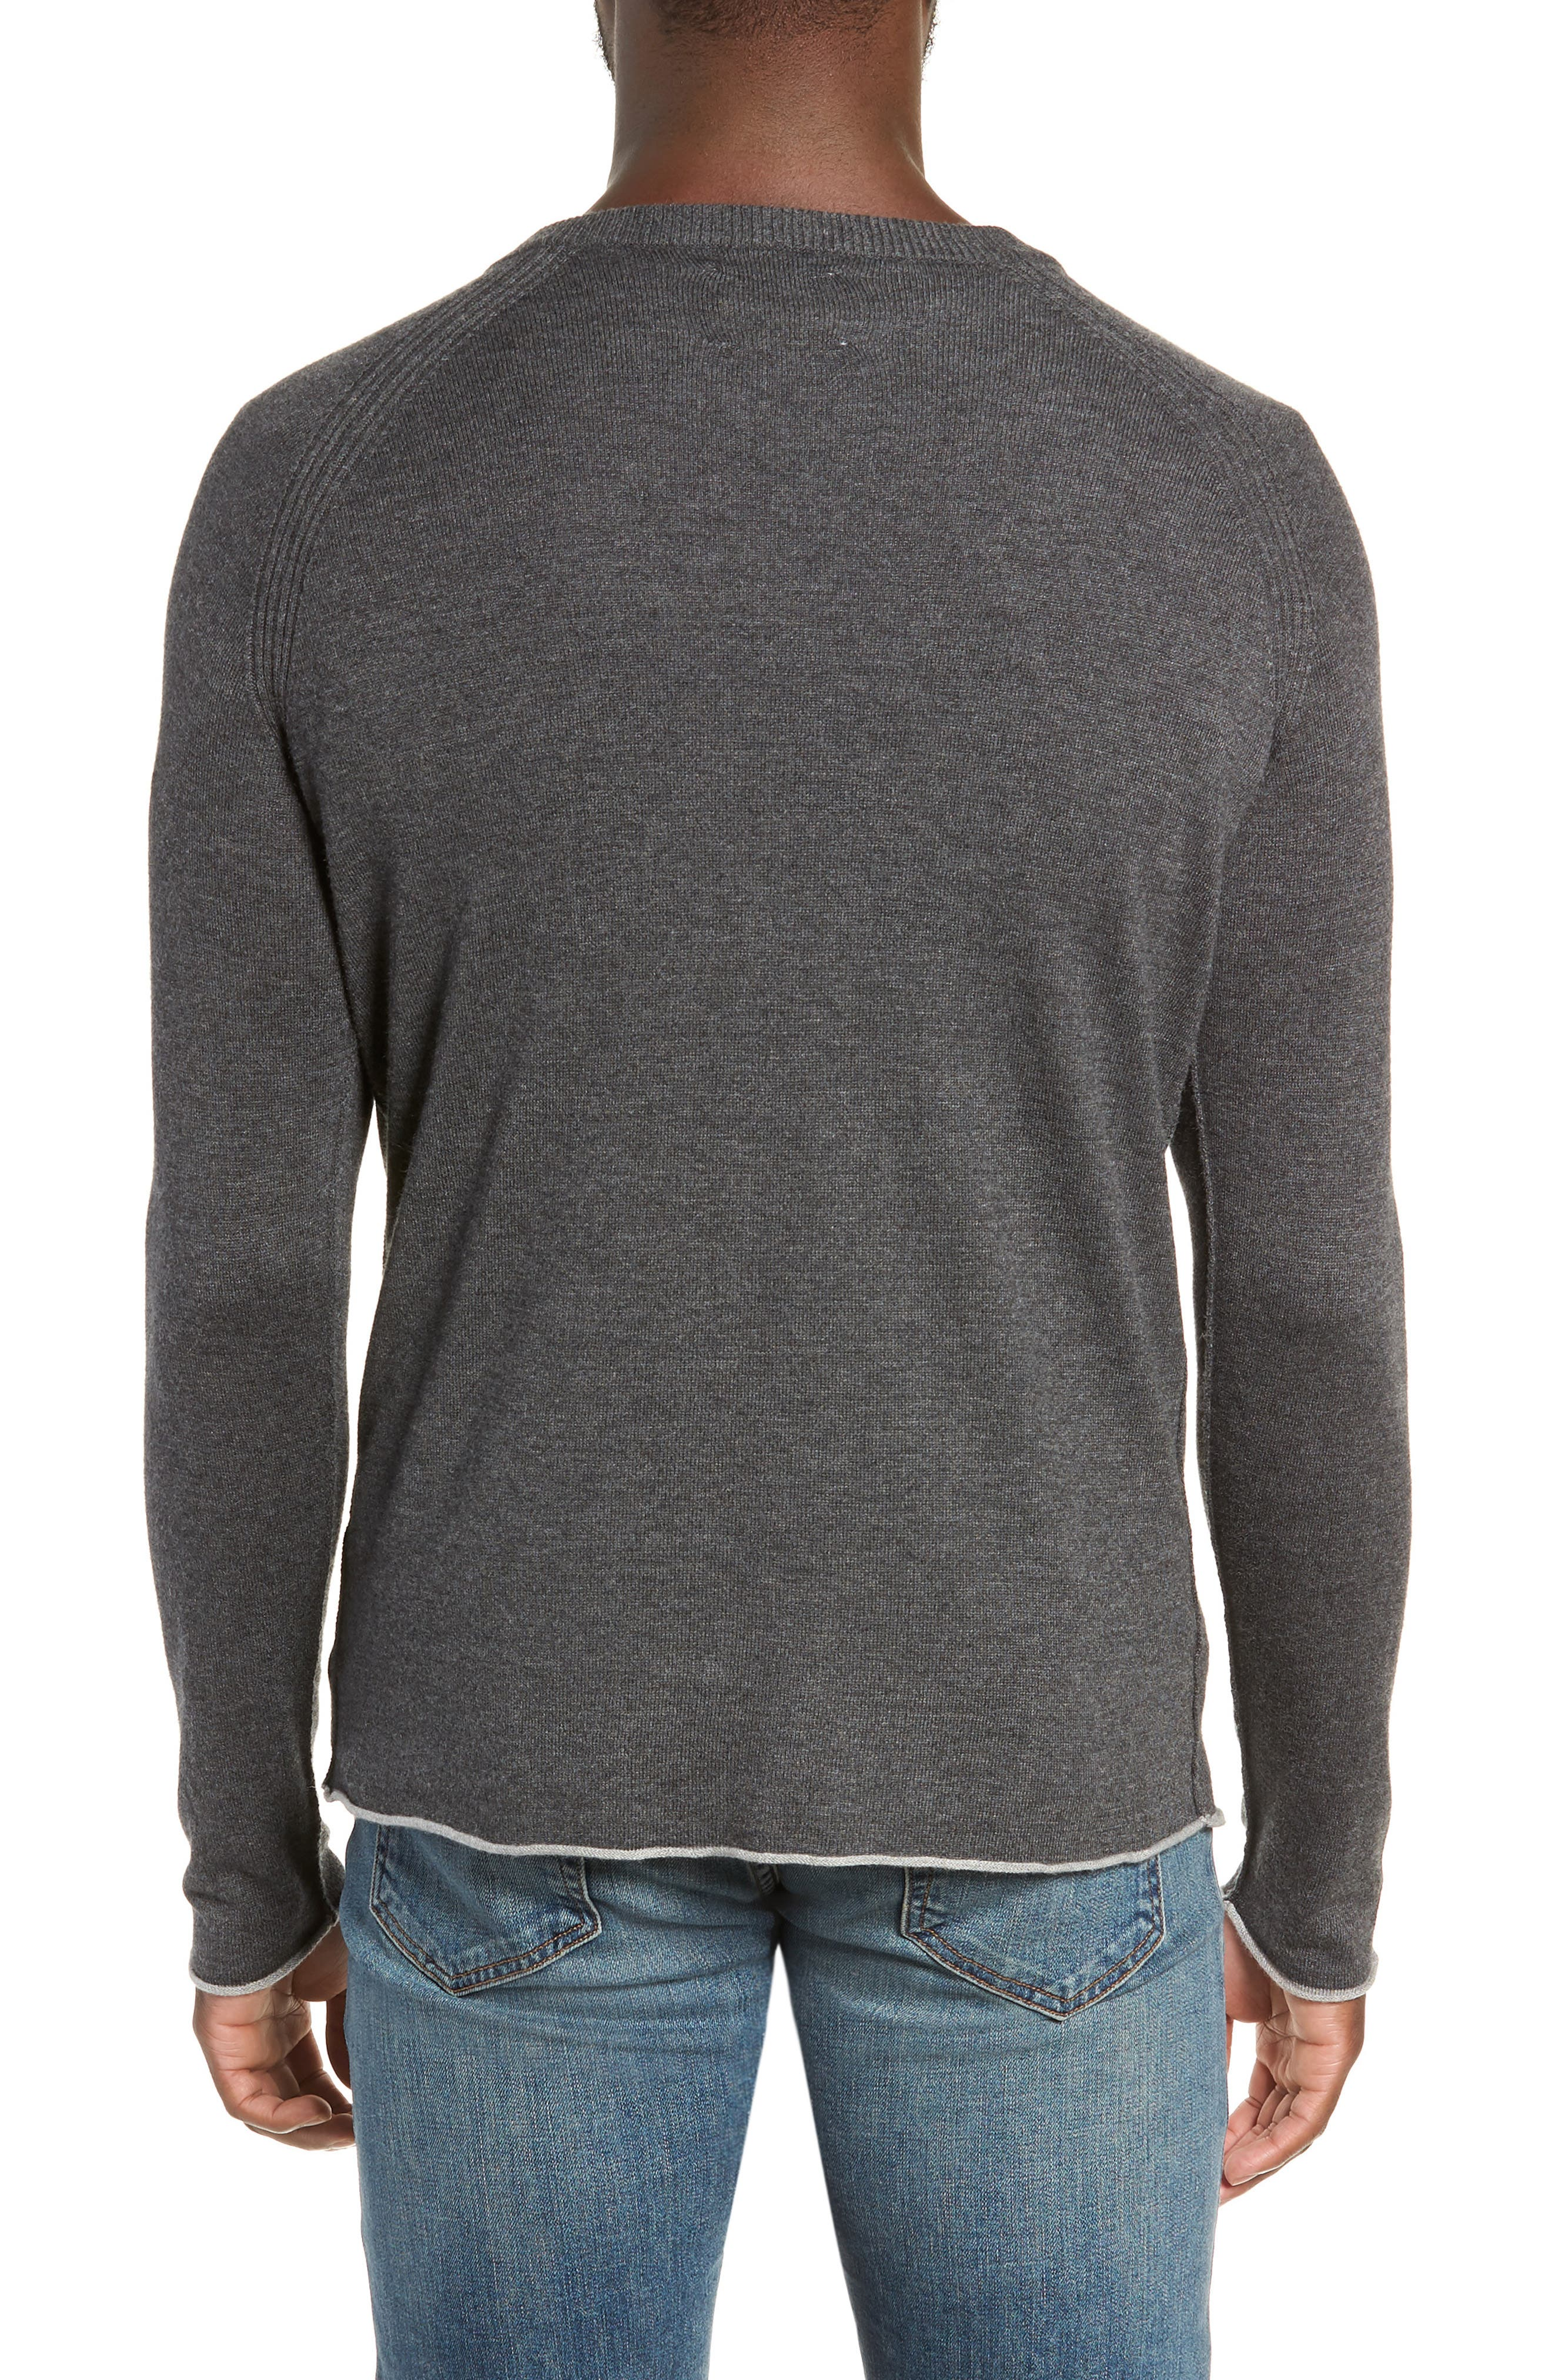 Salinas Cash V-Neck Sweater,                             Alternate thumbnail 2, color,                             CHARCOAL HEATHER